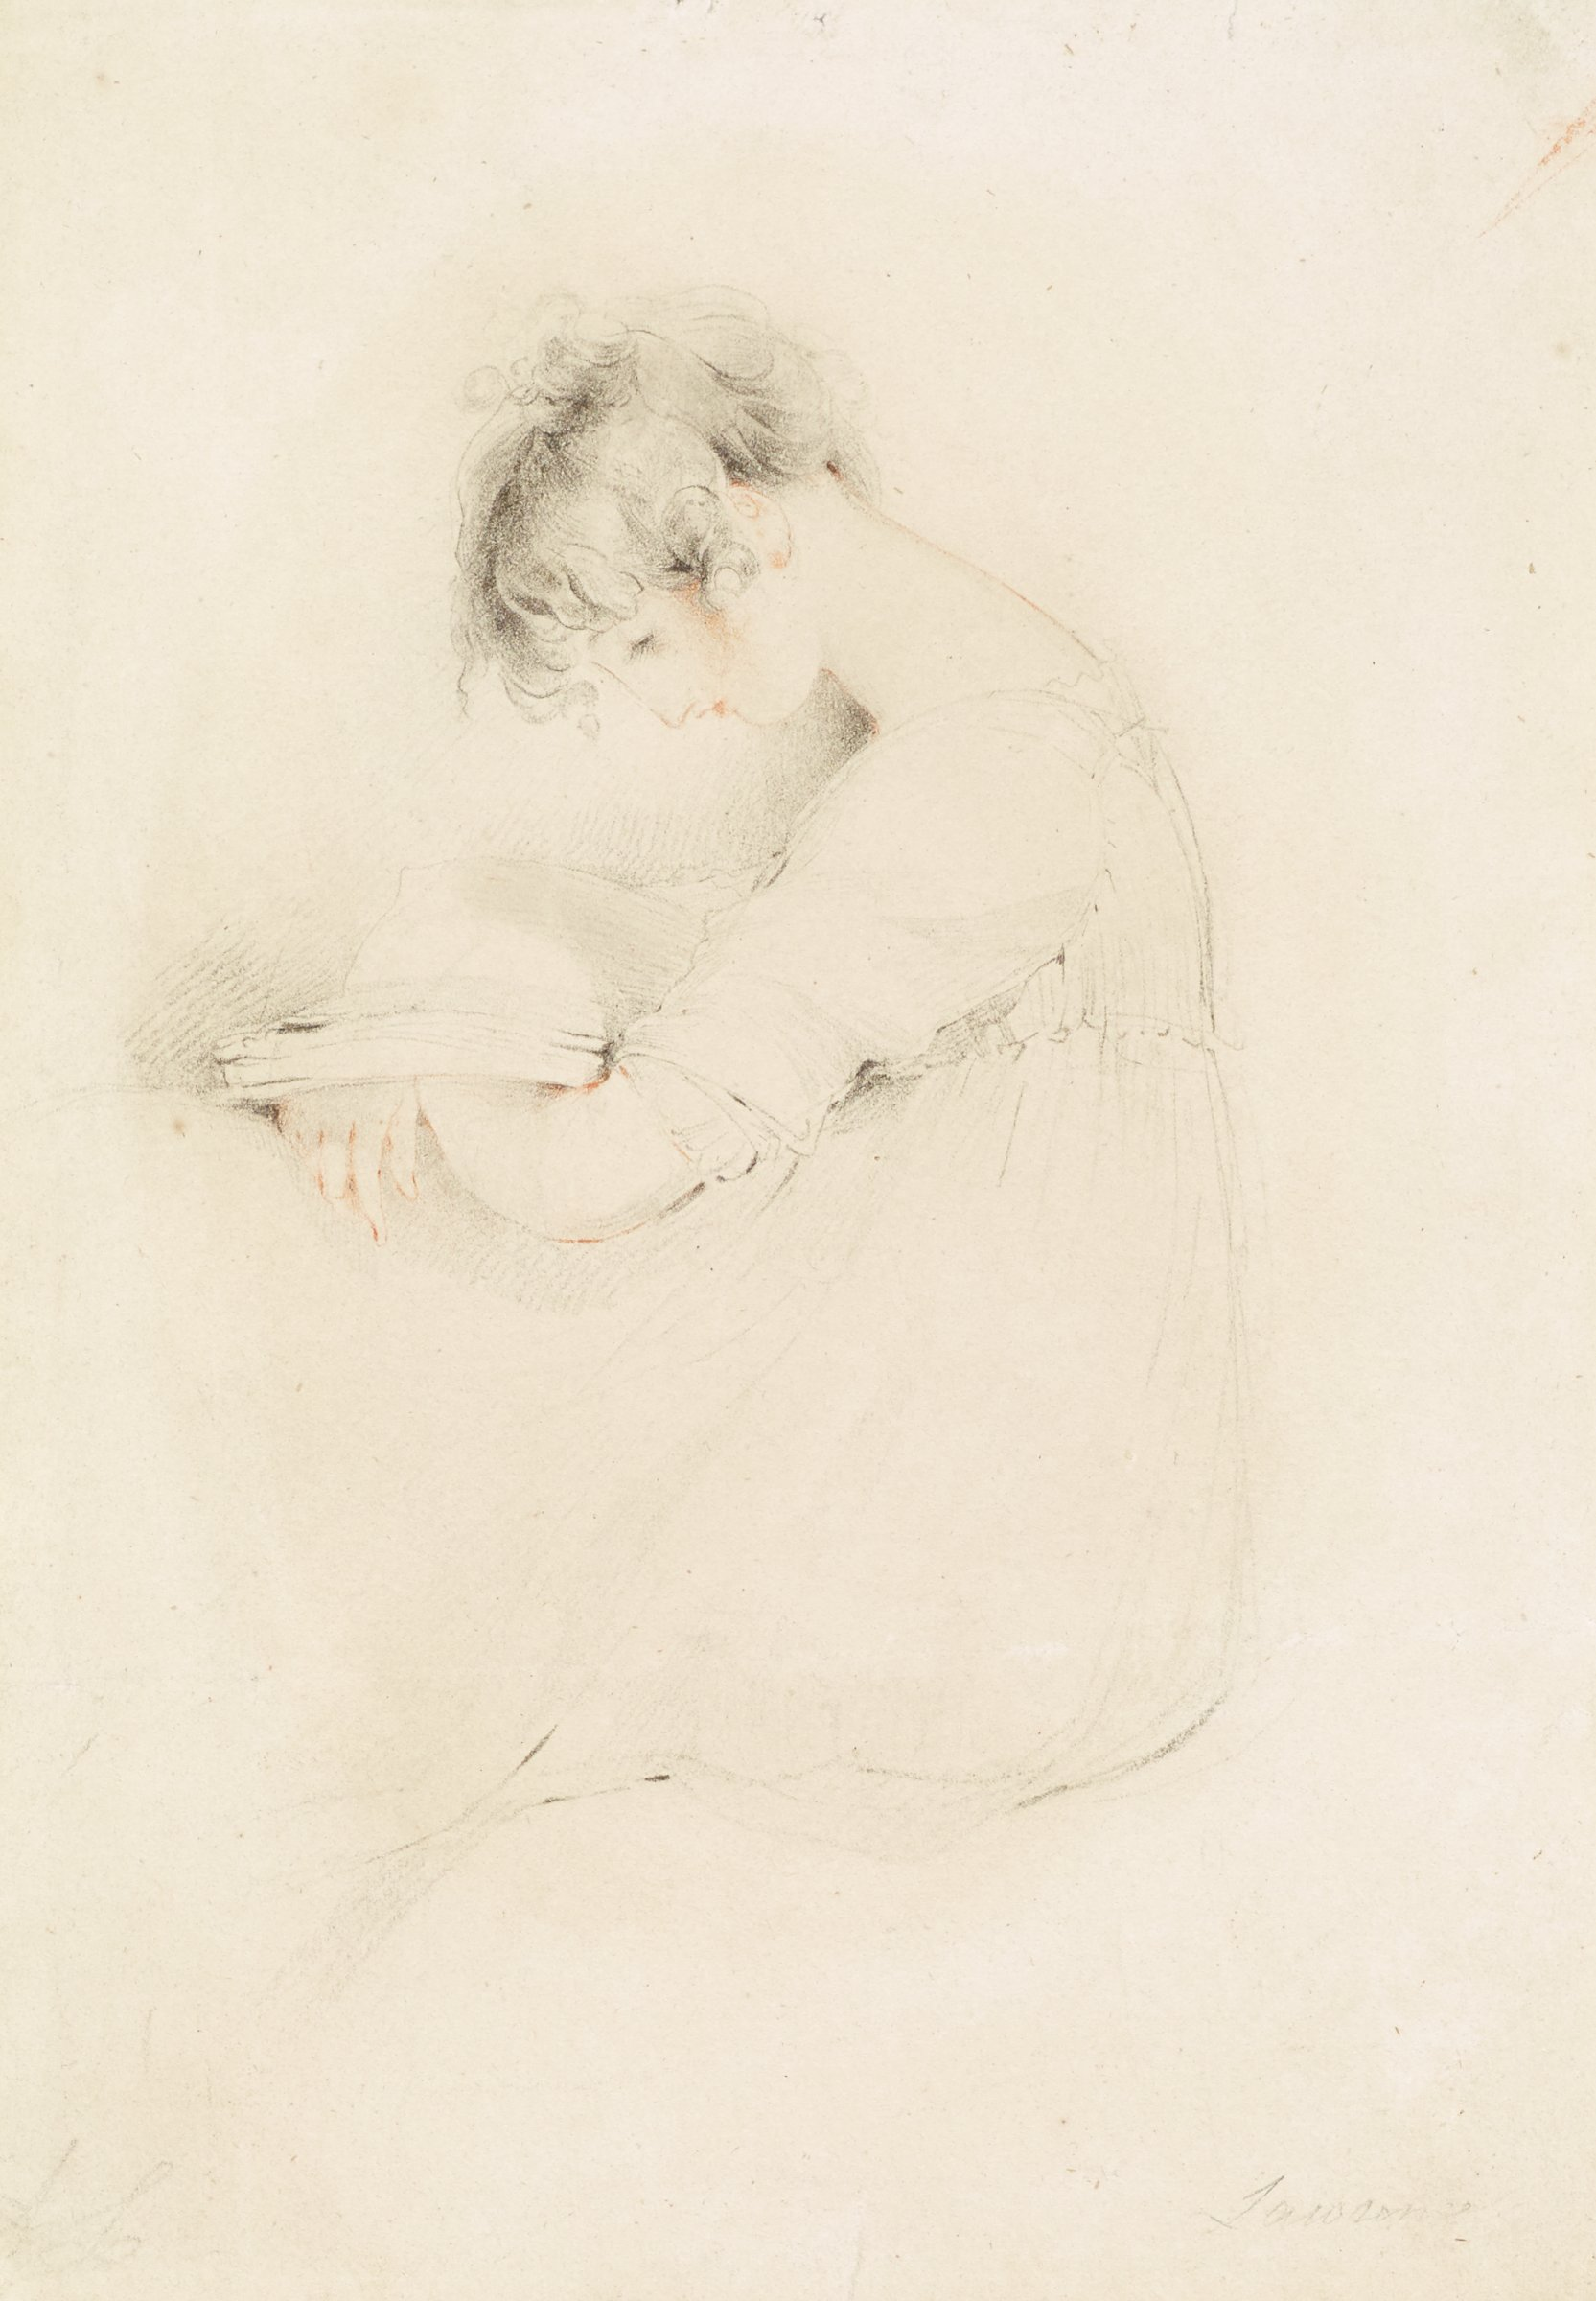 A woman cradles an open book in her arms as she leans on a table and lowers her gaze to read.